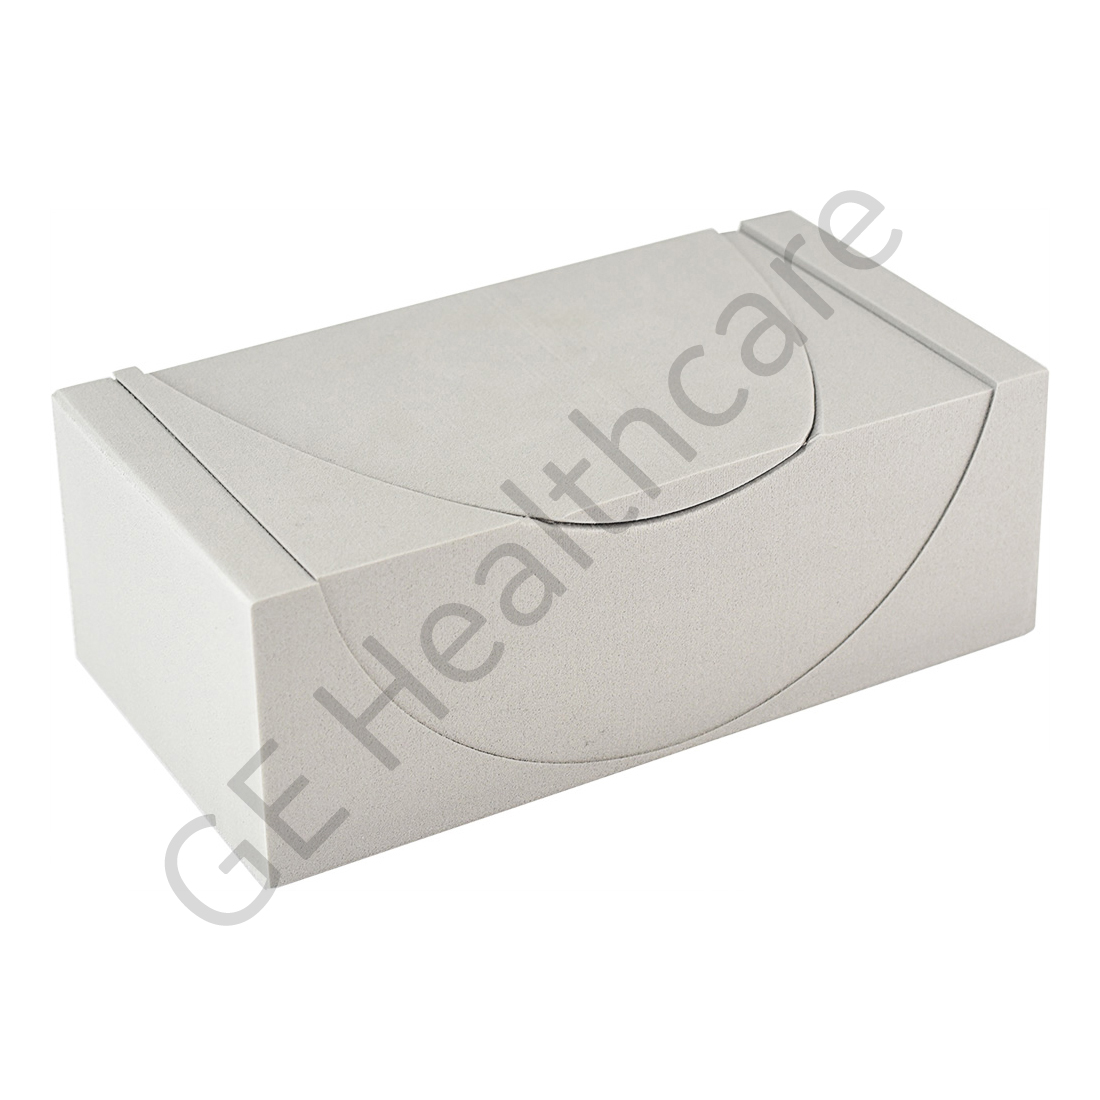 Head Holder Wedge - 25 Degree - RoHS